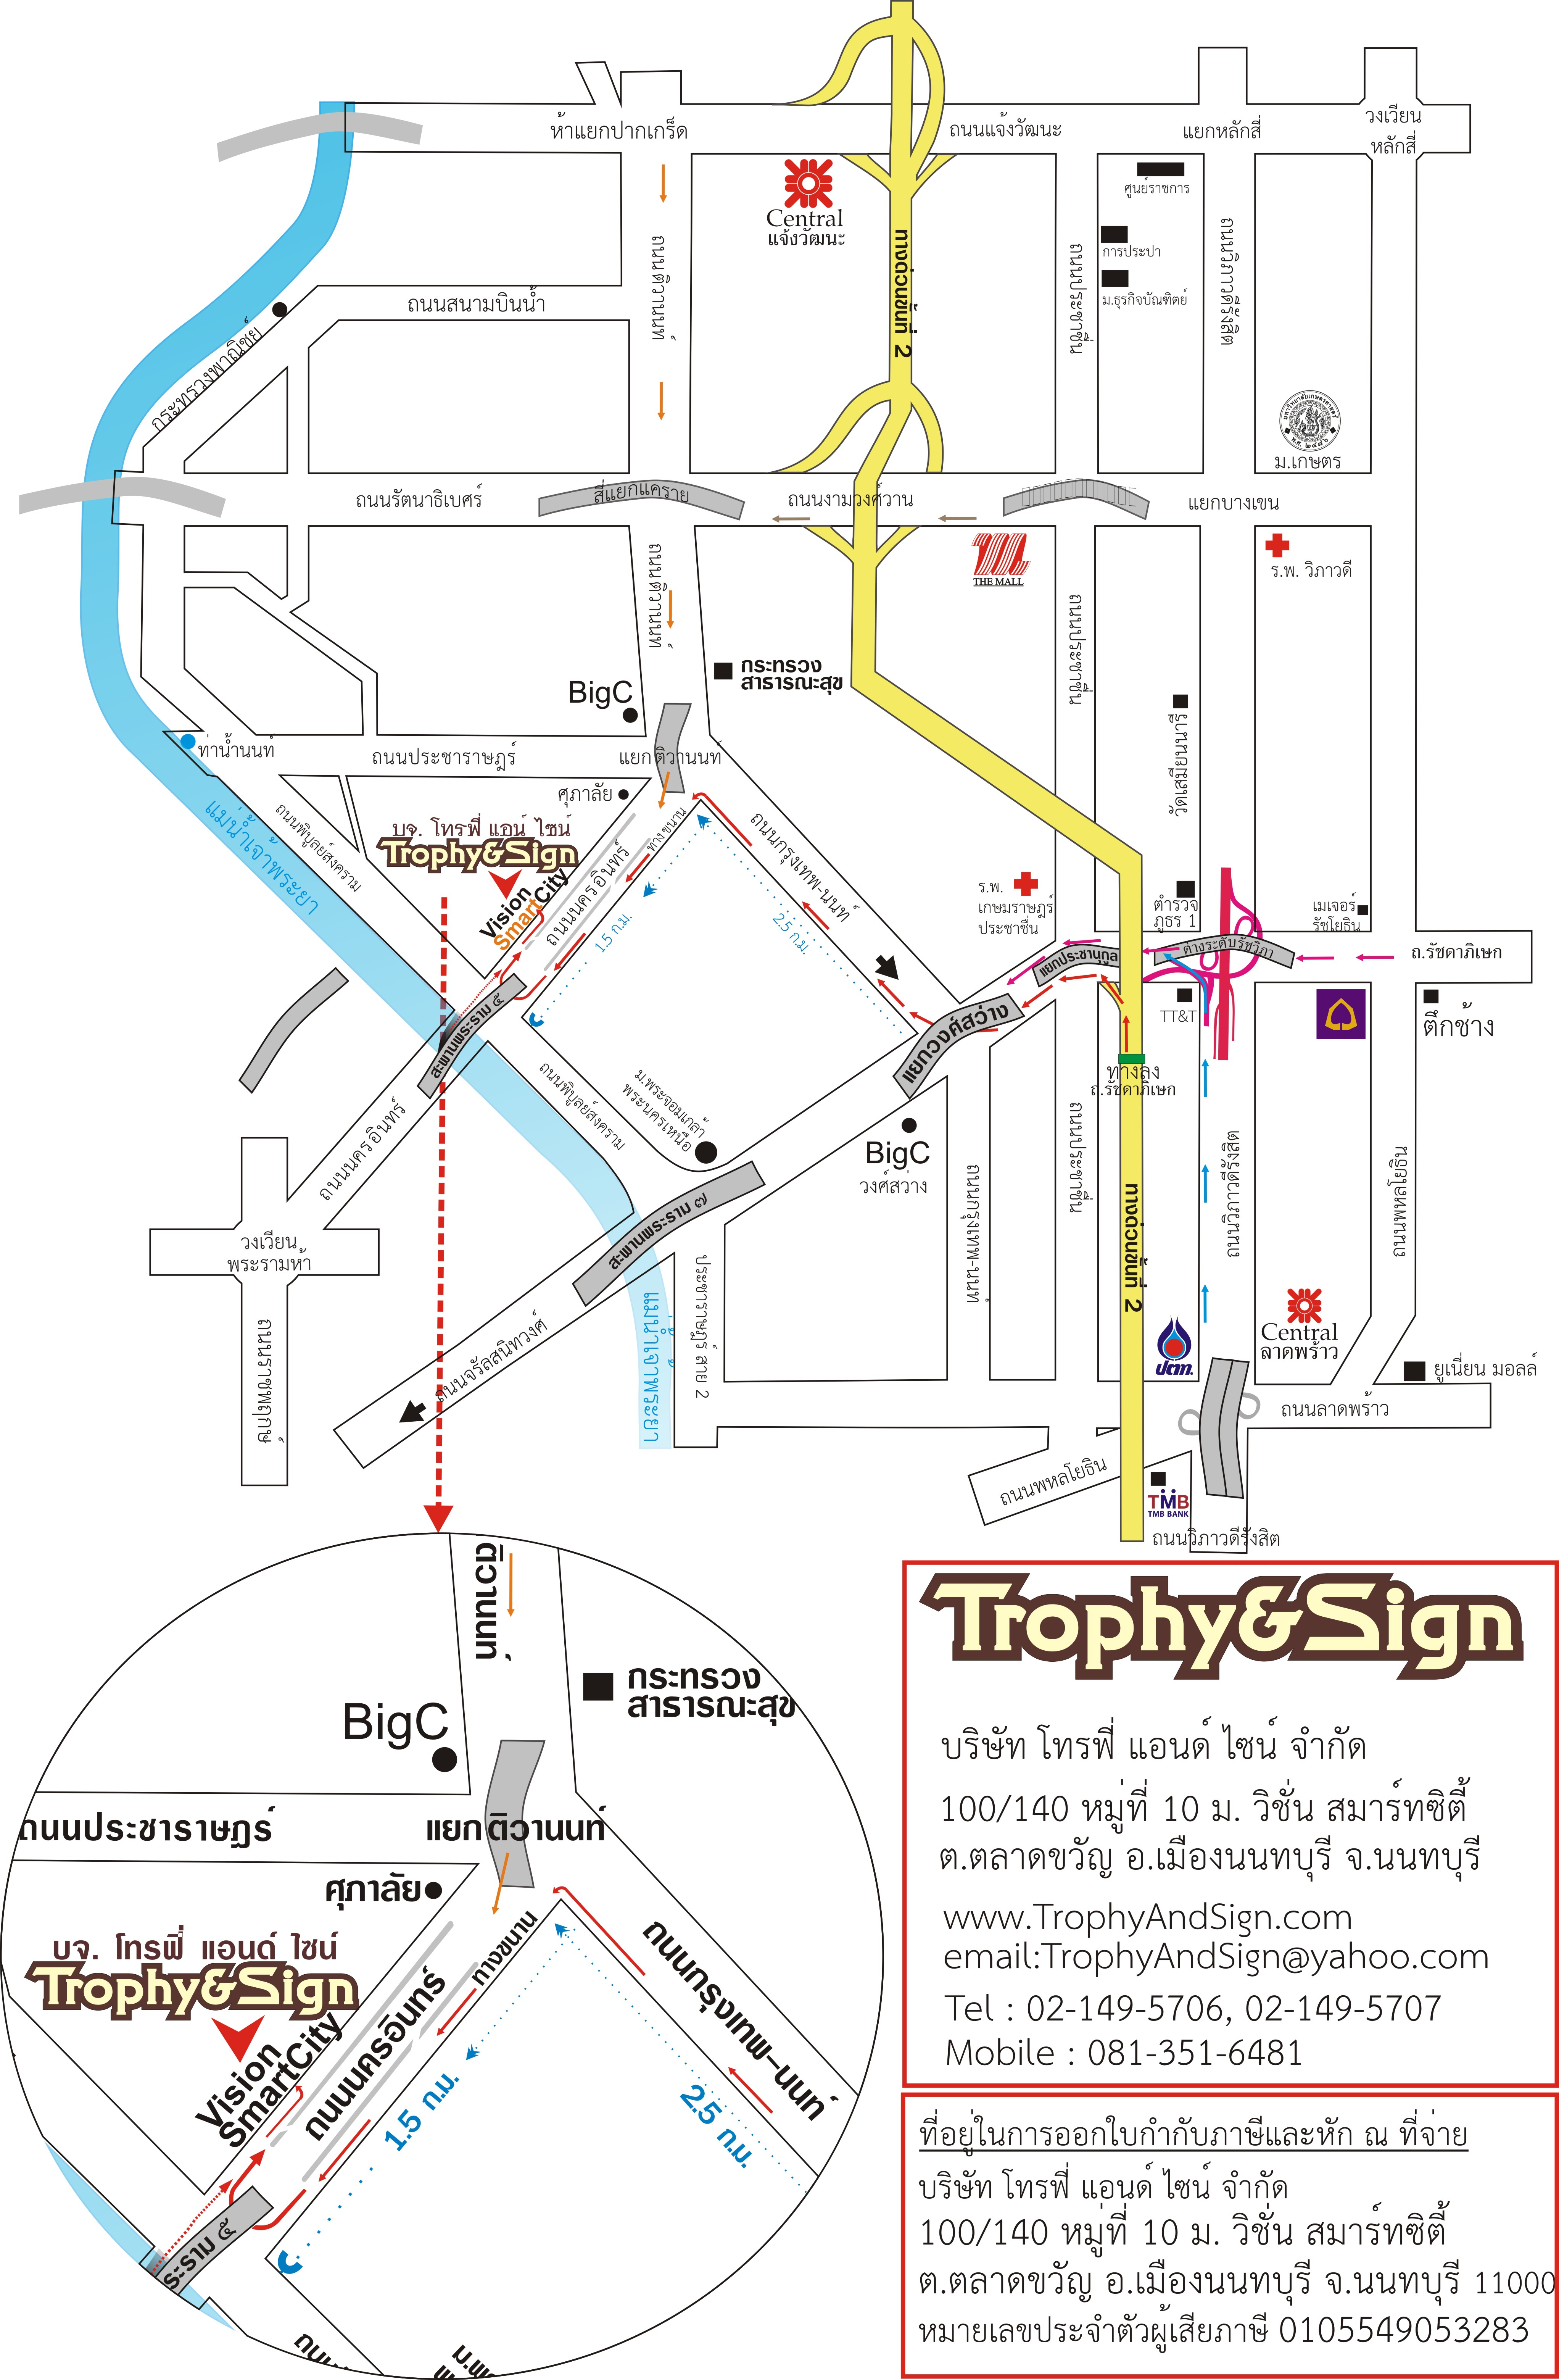 map_trophy_and_sign